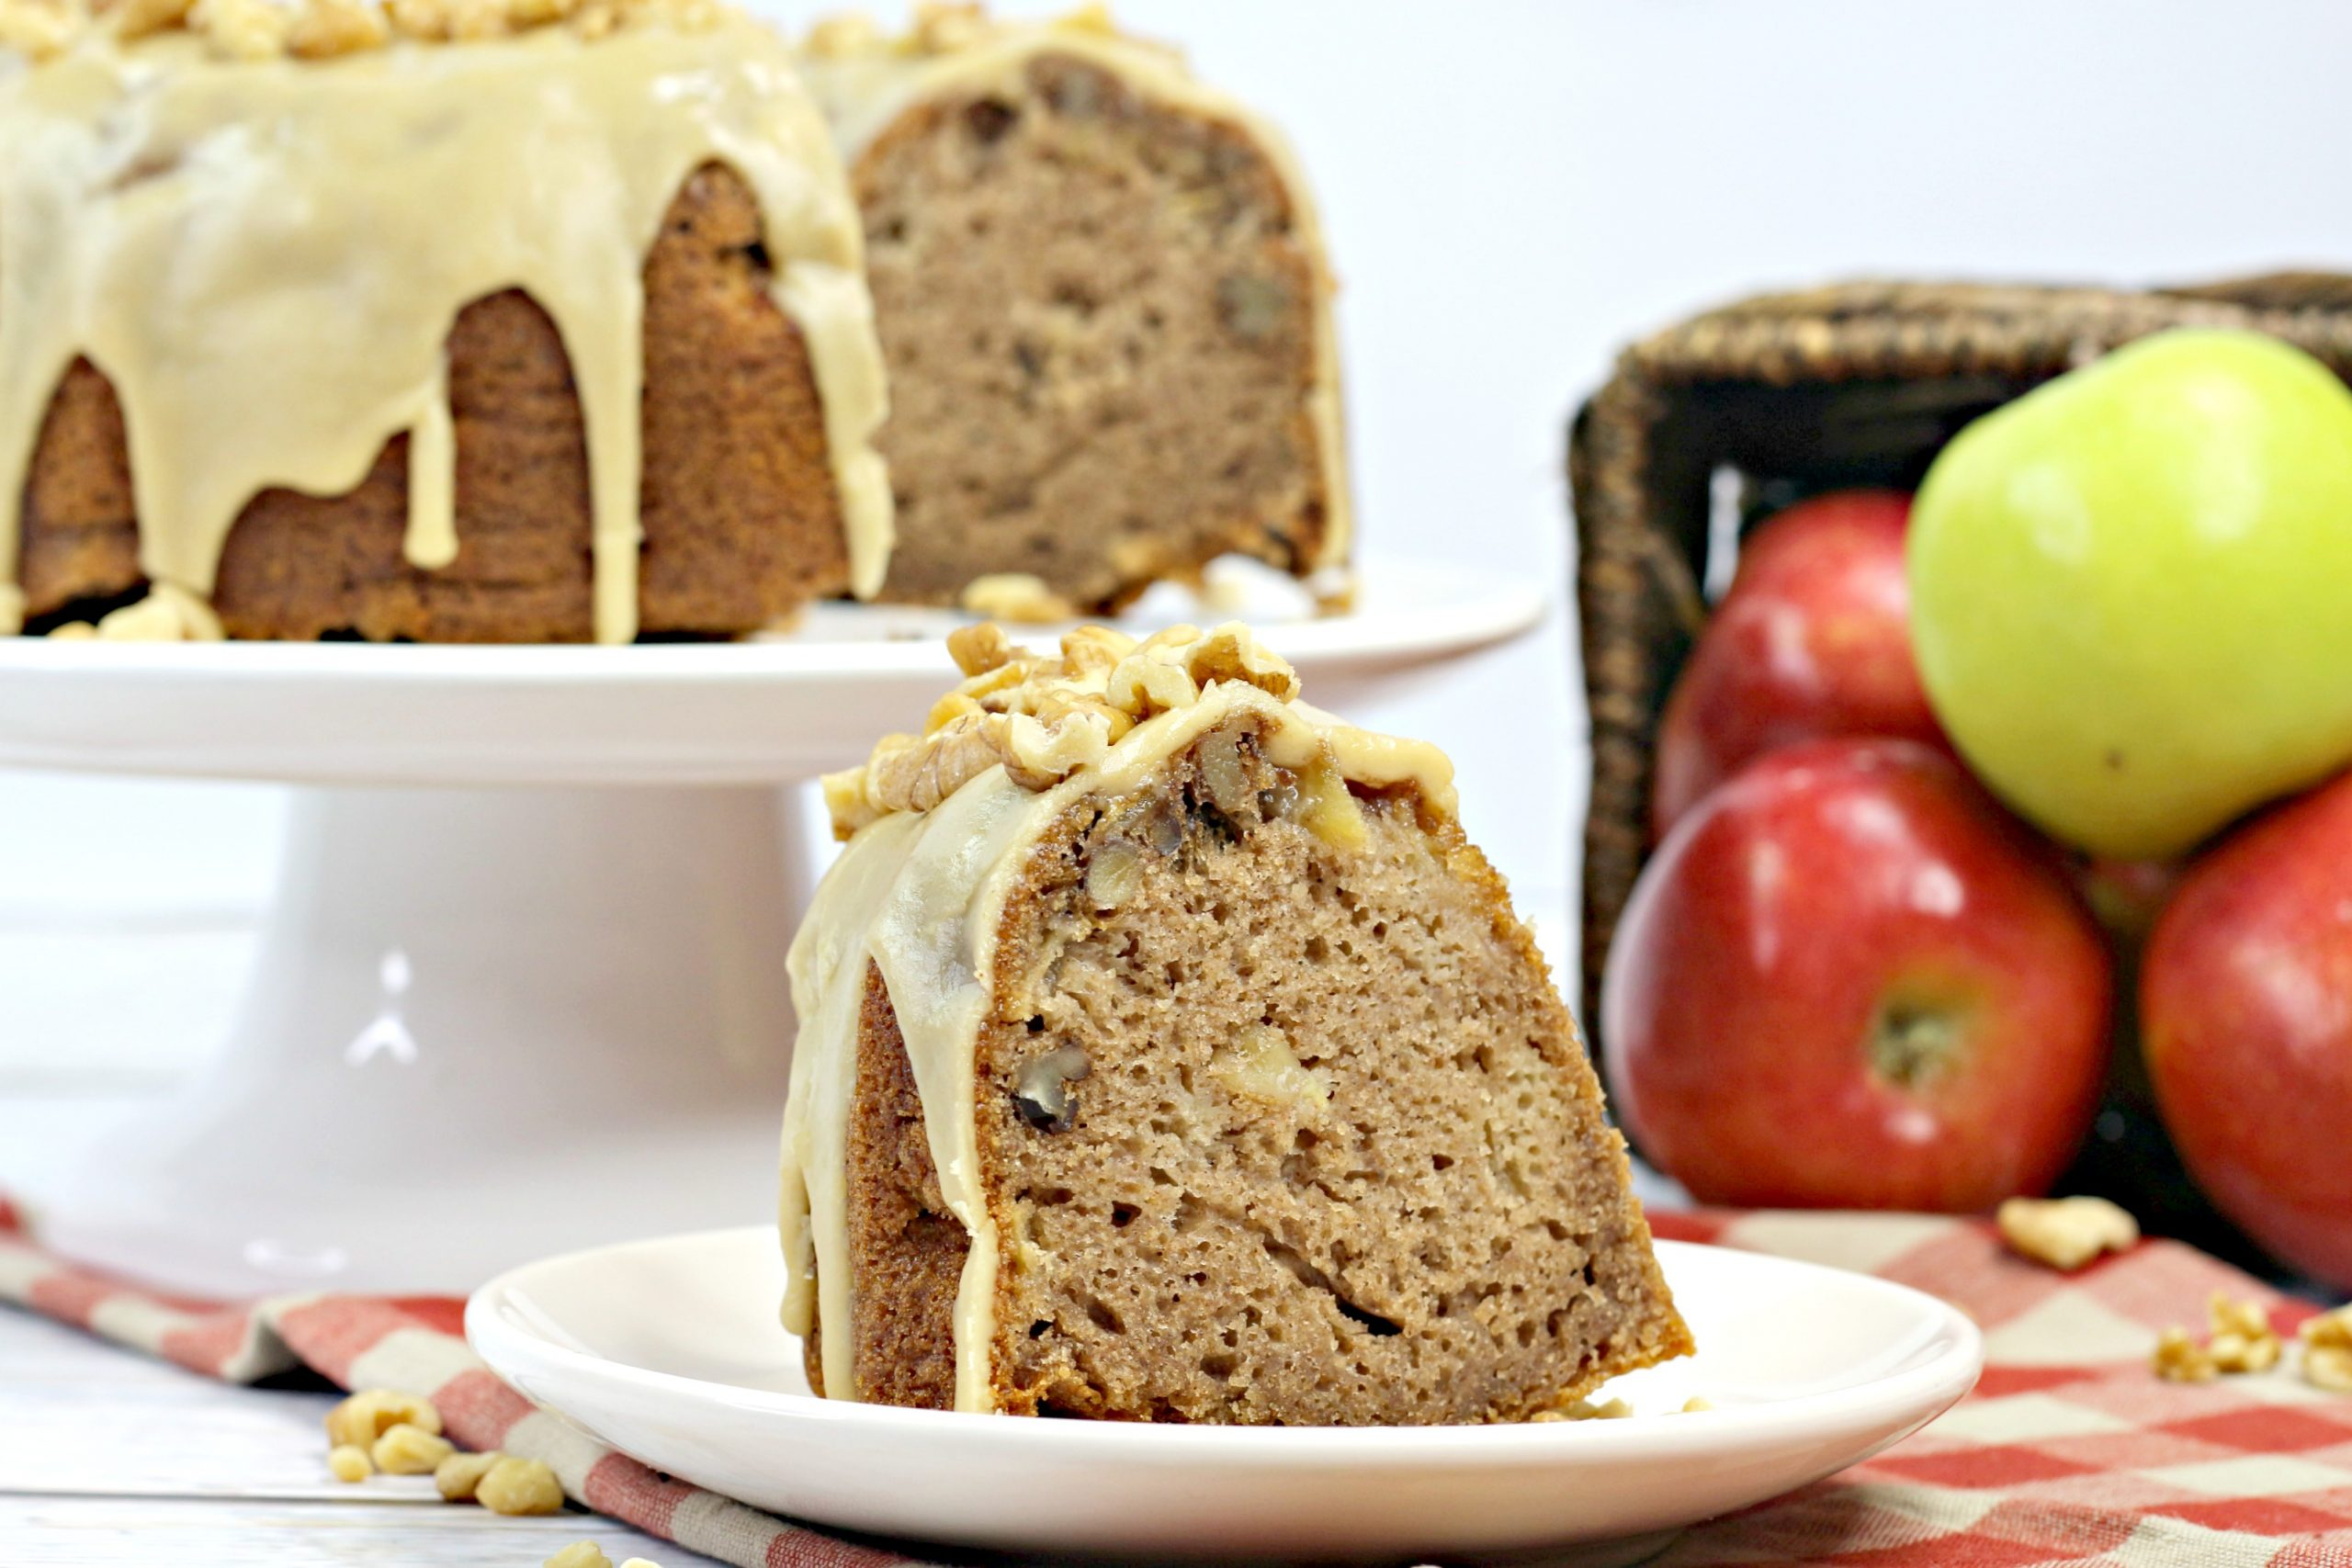 A slice of the caramel apple Bundt with the rest of the cake behind it.